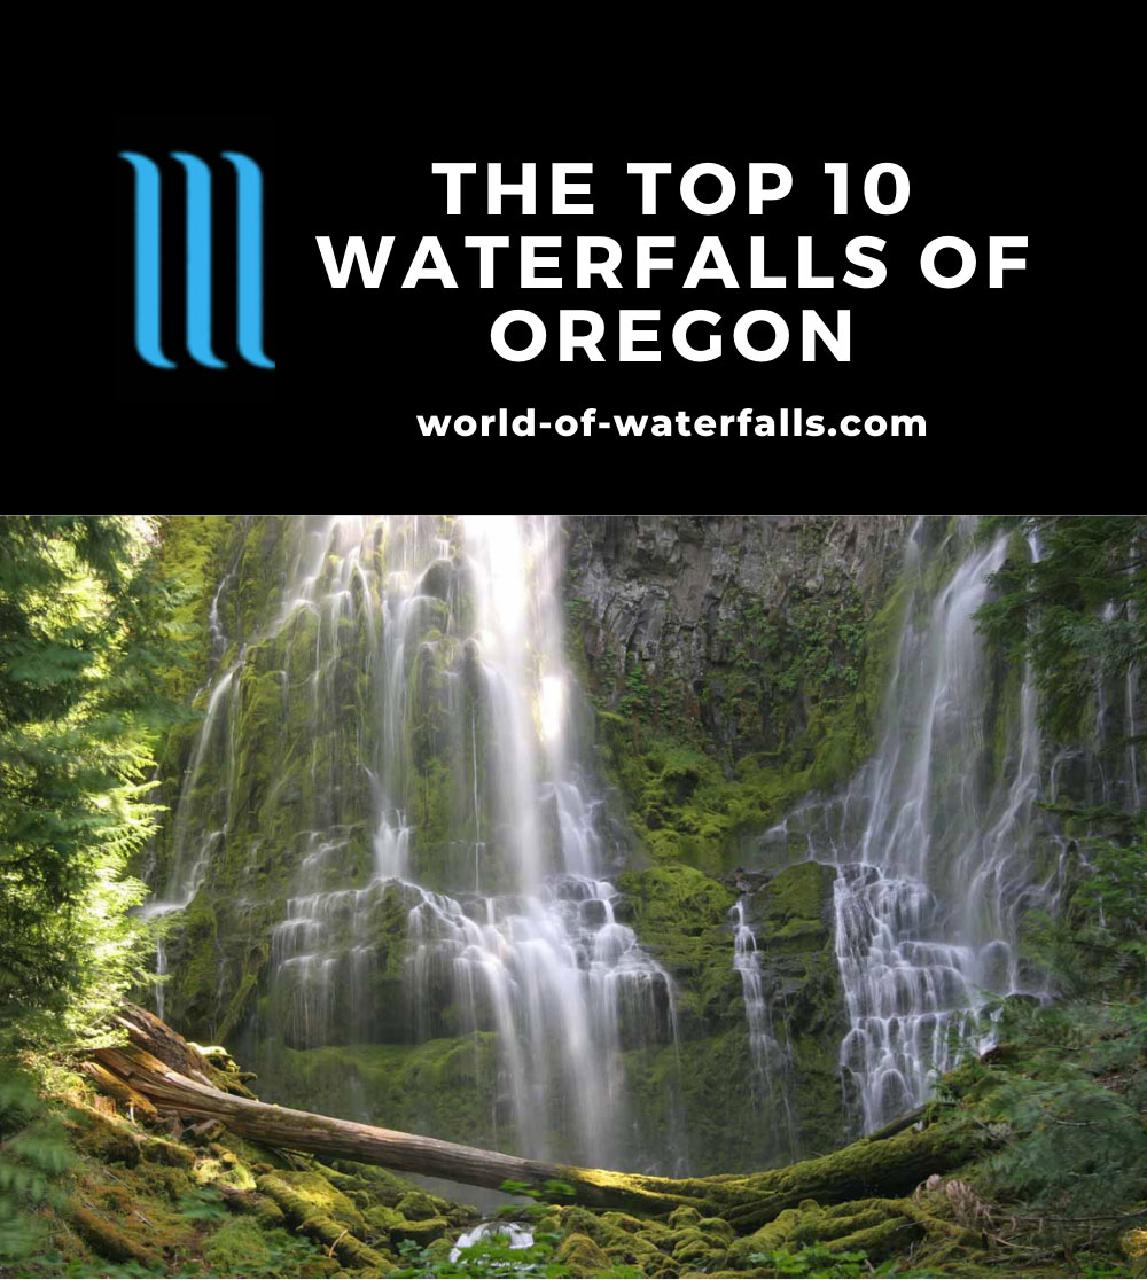 The Top 10 Waterfalls of Oregon